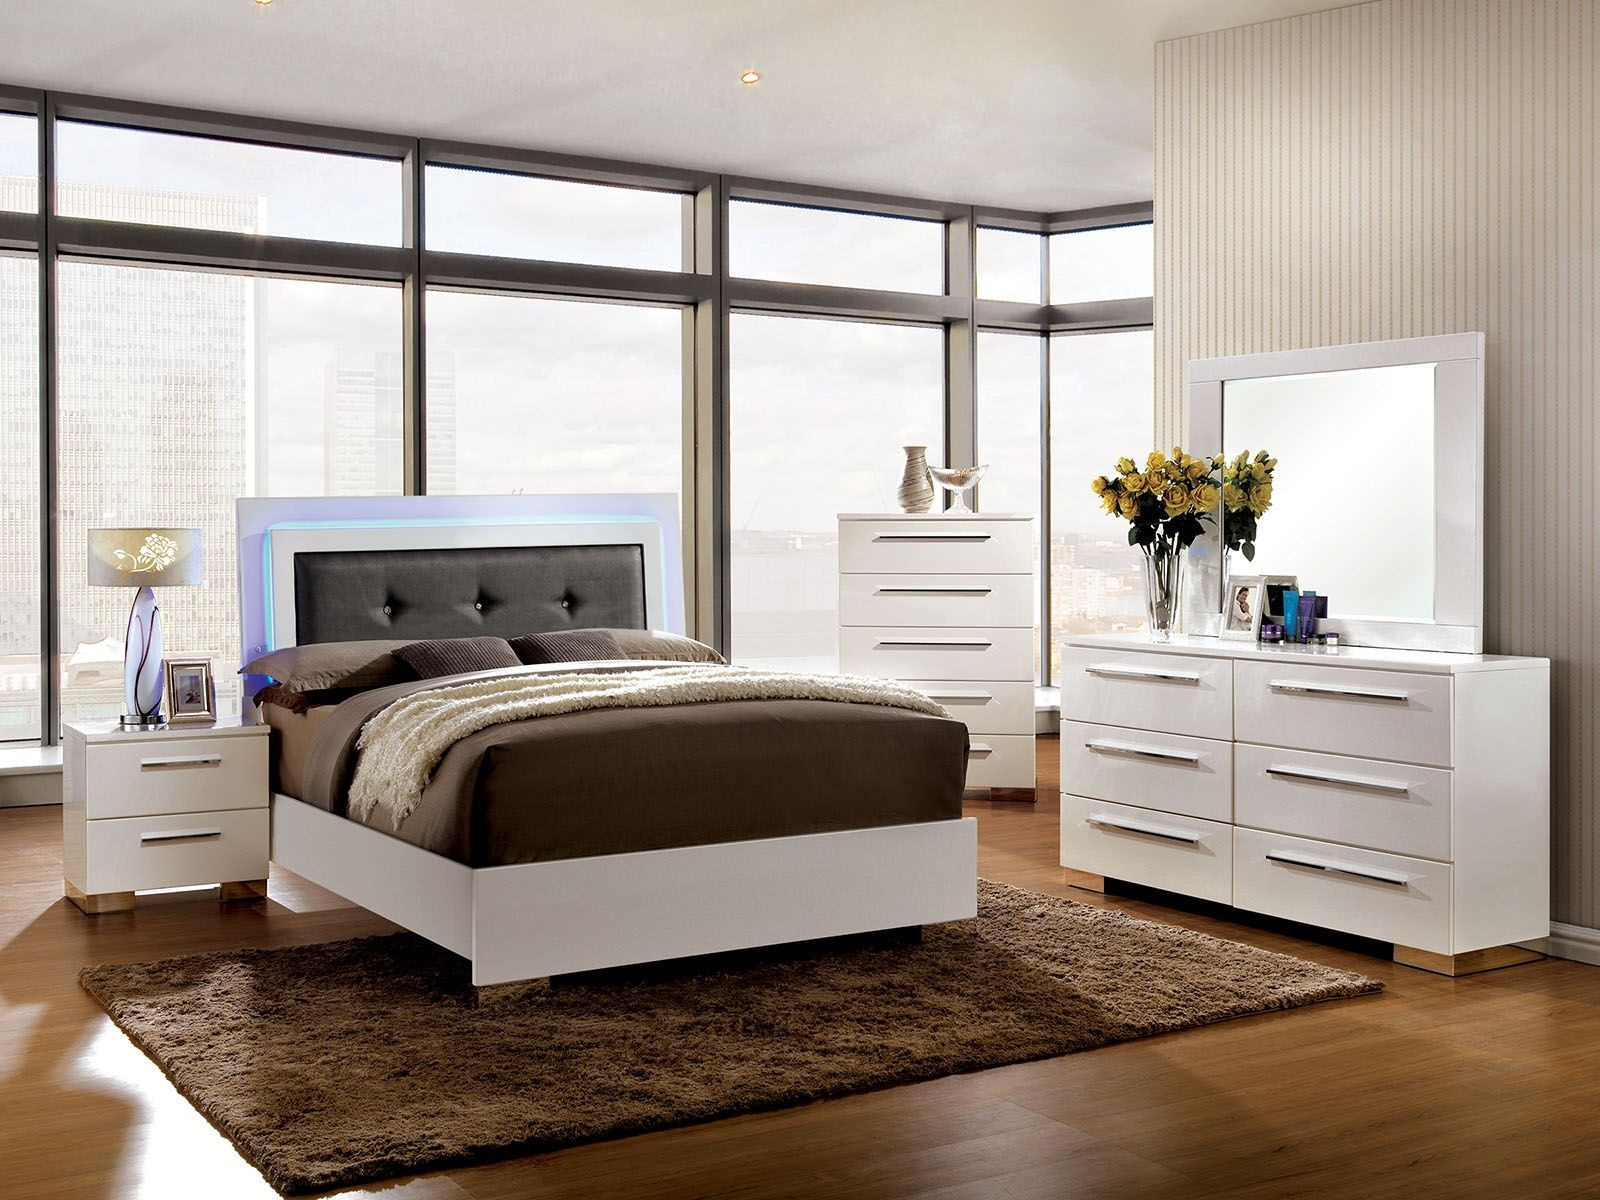 clementine smooth white upholstered bedroom set from furniture of america | coleman furniture